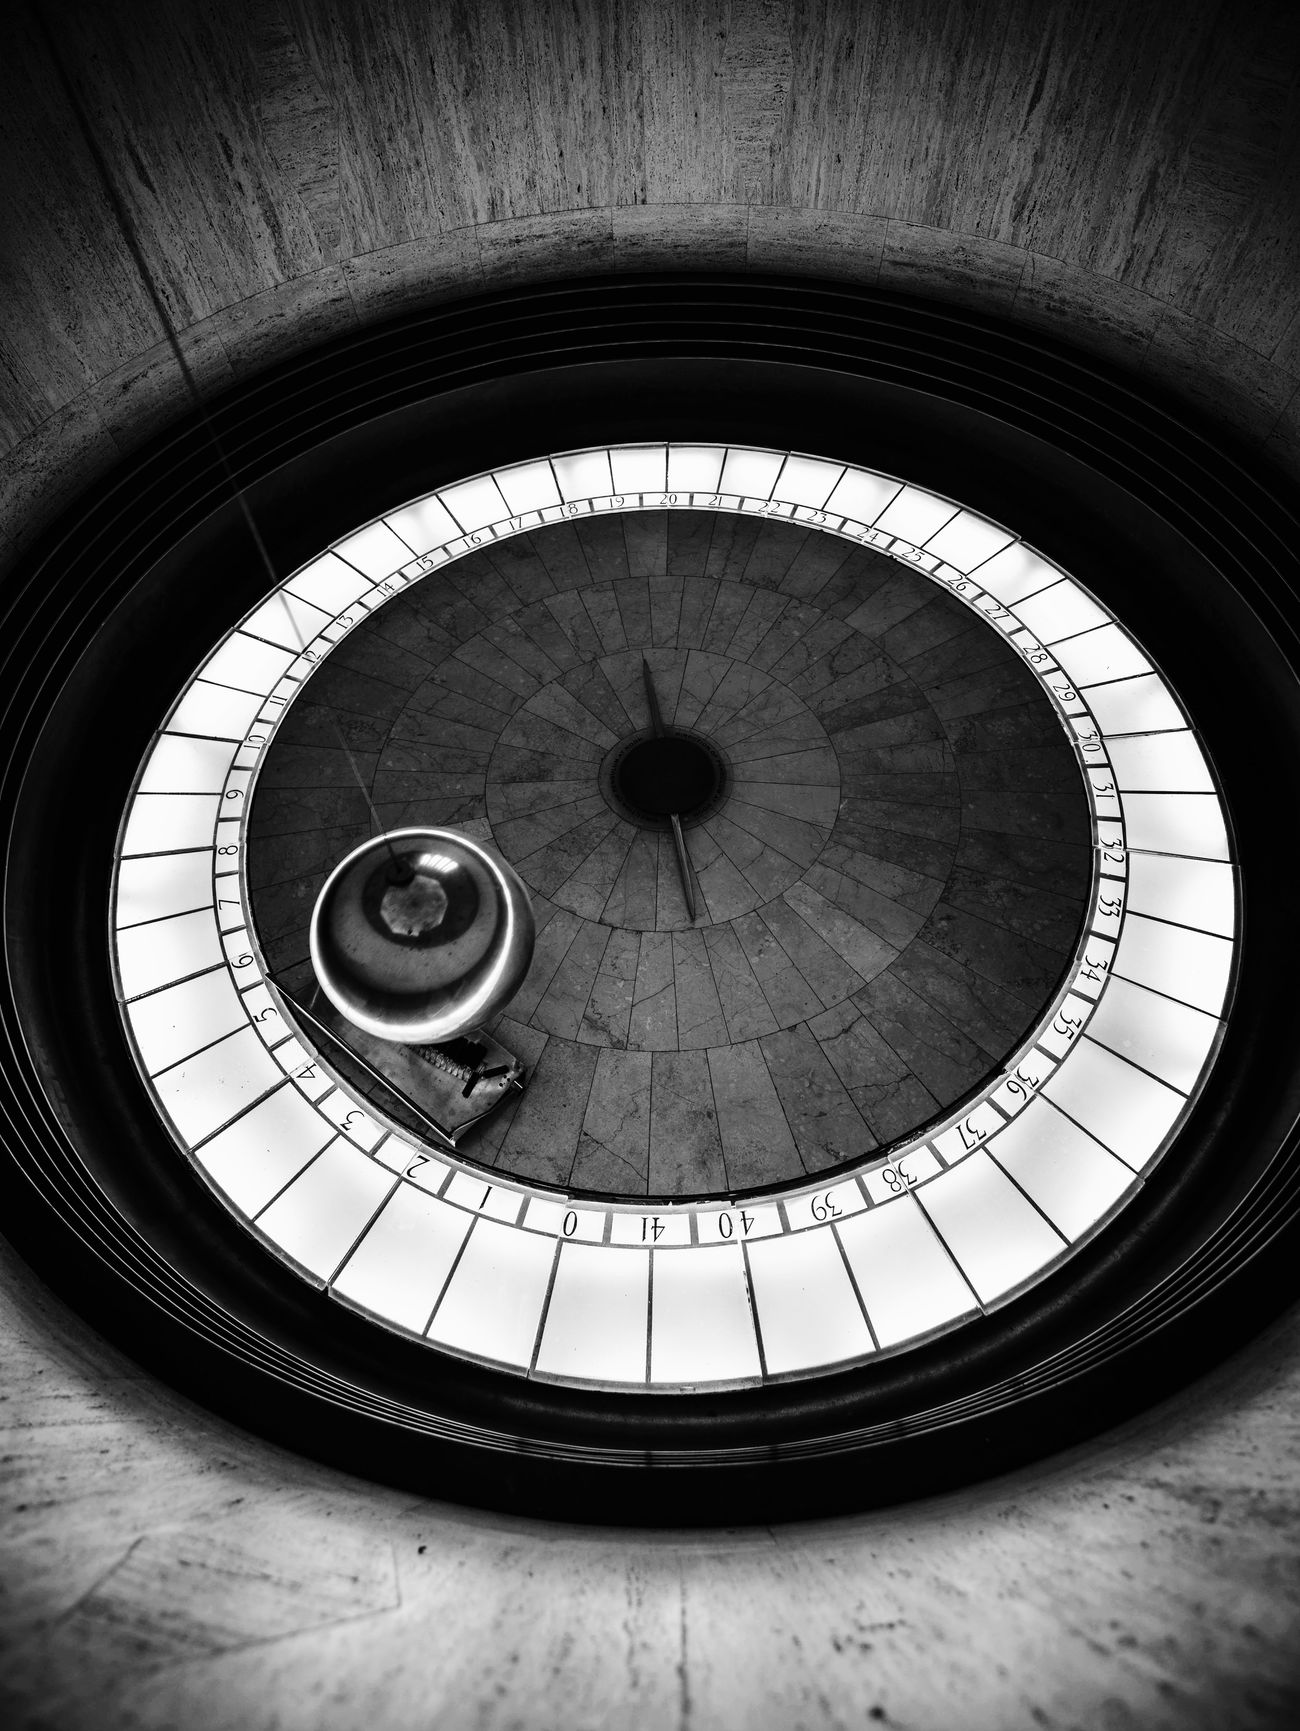 BYOPaper! The Architect - 2017 EyeEm Awards Architecture No People Built Structure Indoors  Streetphotographer Urban Exploration Urban Photography Street Photography Urban Perspectives LosAngelesCity WeekOnEyeEm EyeEm Best Shots EyeEmBestPics StillLife Streetphotography The Street Photographer - 2017 EyeEm Awards City Monochrome _ Collection MonochromePhotography Blackandwhite Griffith Observatory Museum Architecturephotography